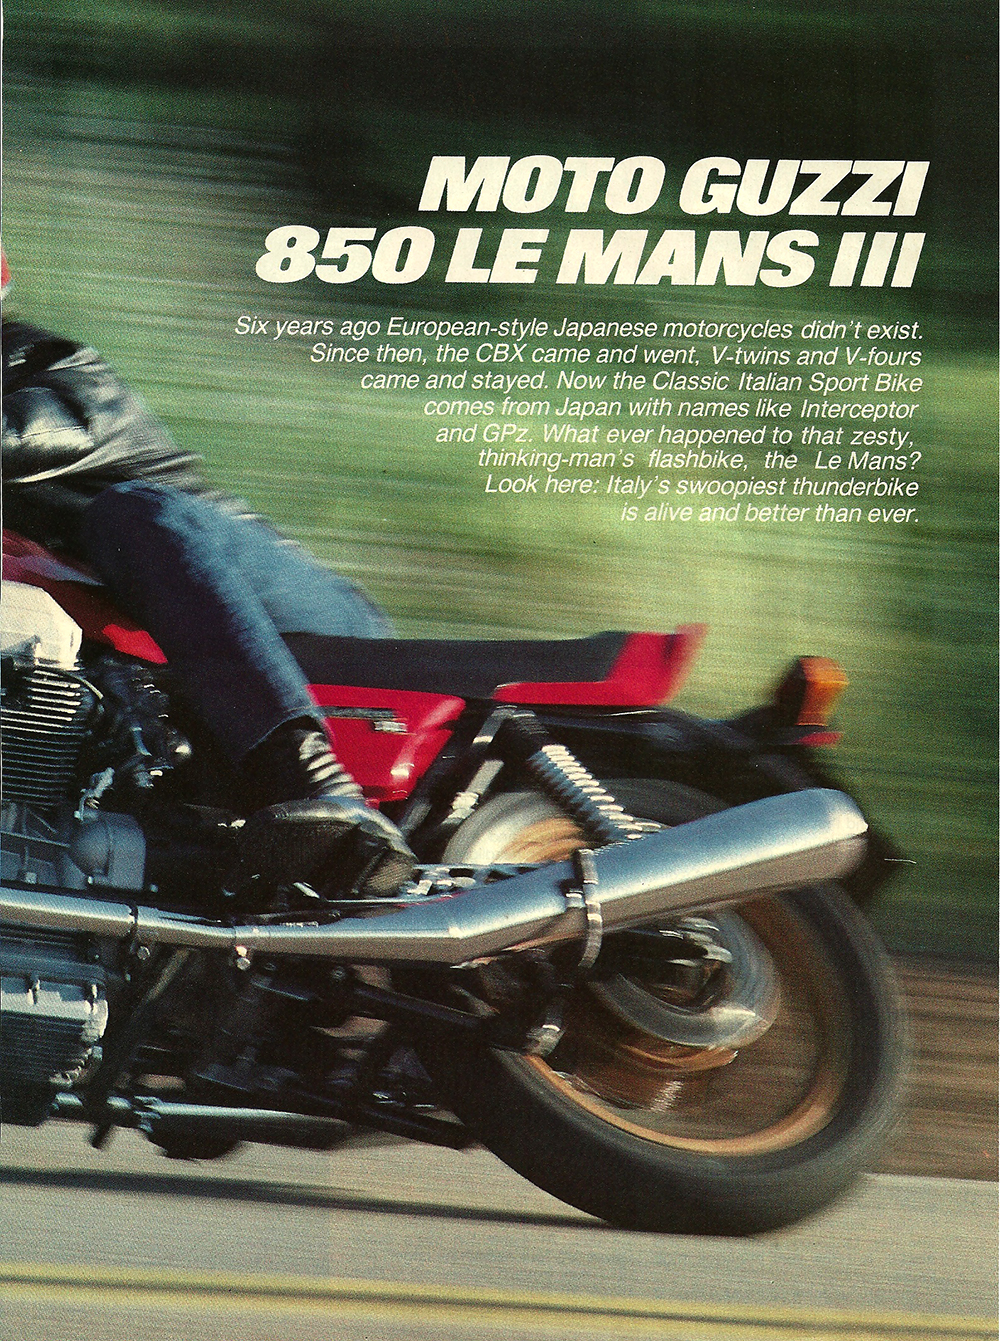 1983 Moto Guzzi 850 Lemans 3 road test 2.jpg